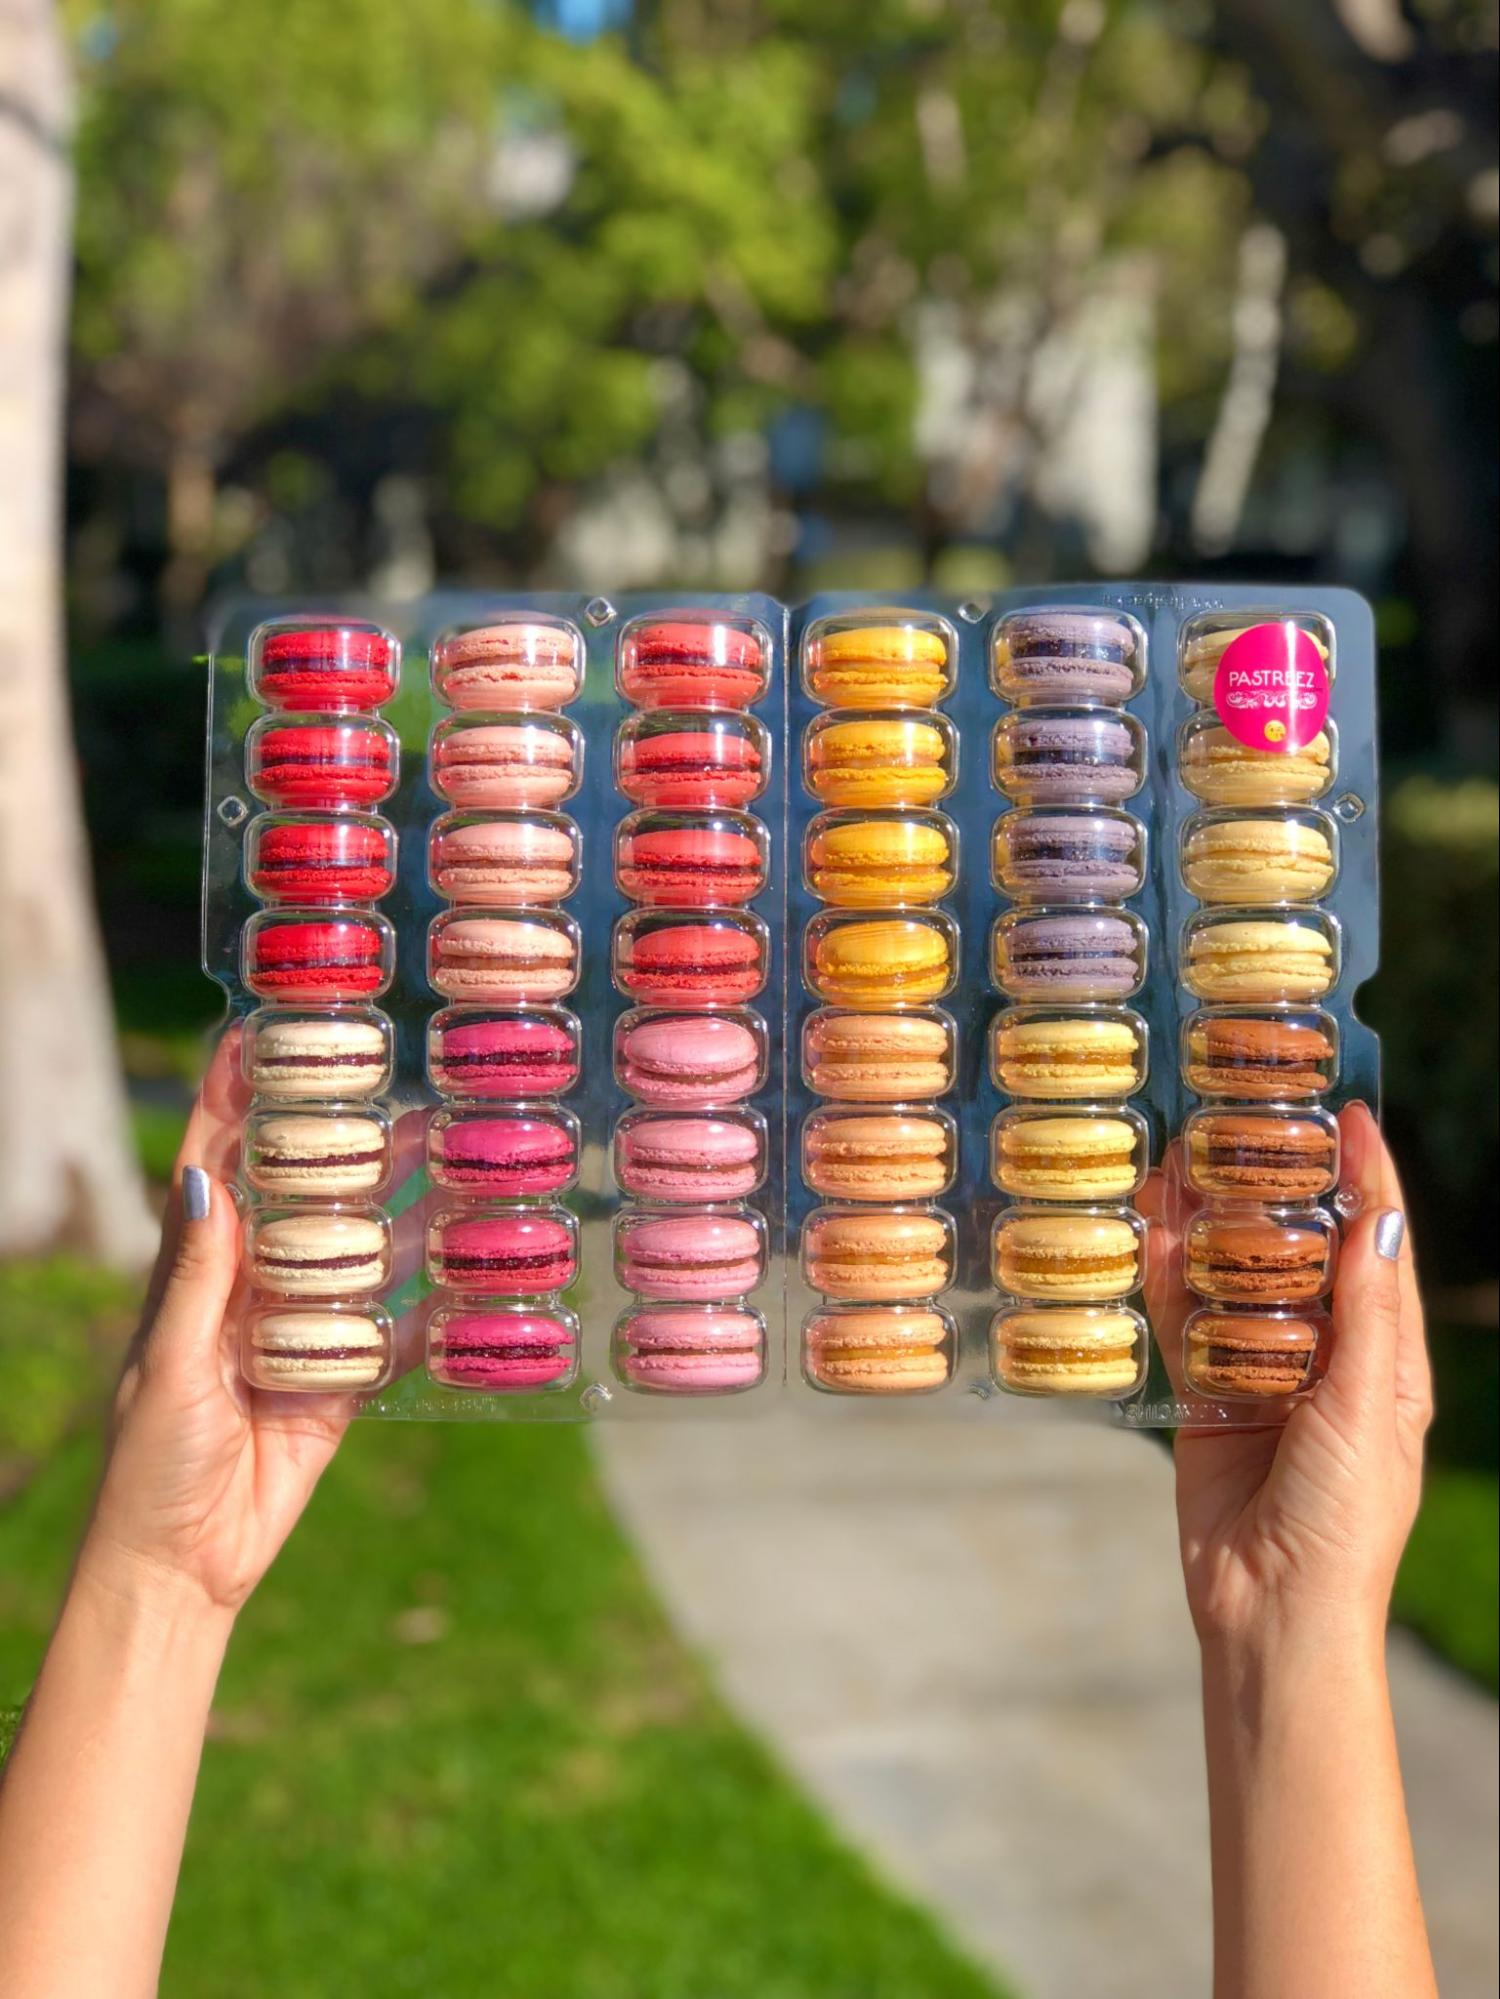 A box of 48 macaroons made by Pastreez.